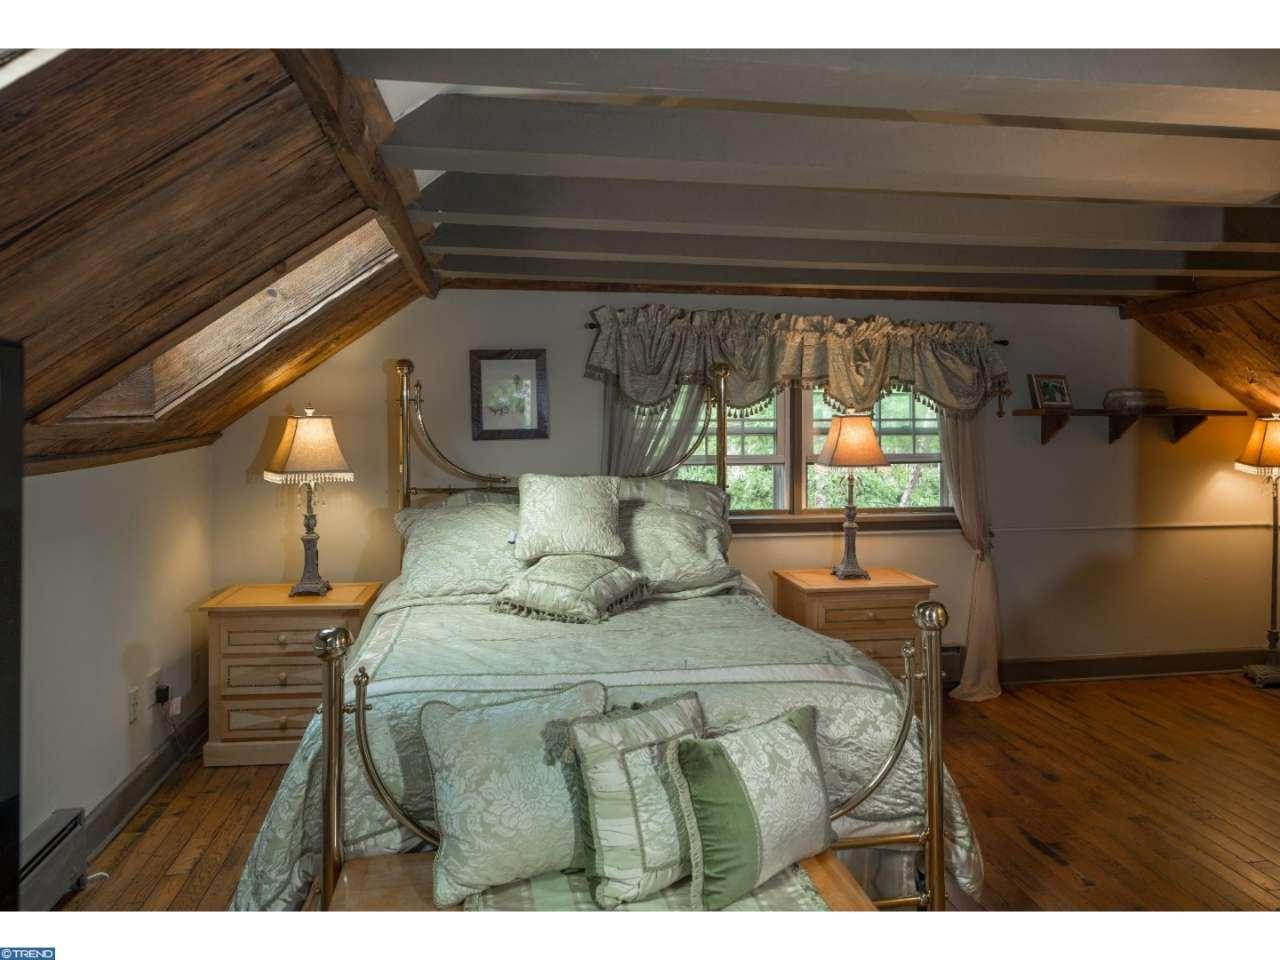 Warm and cozy bedroom in Leap Year Barn house for sale in Doylestown PA